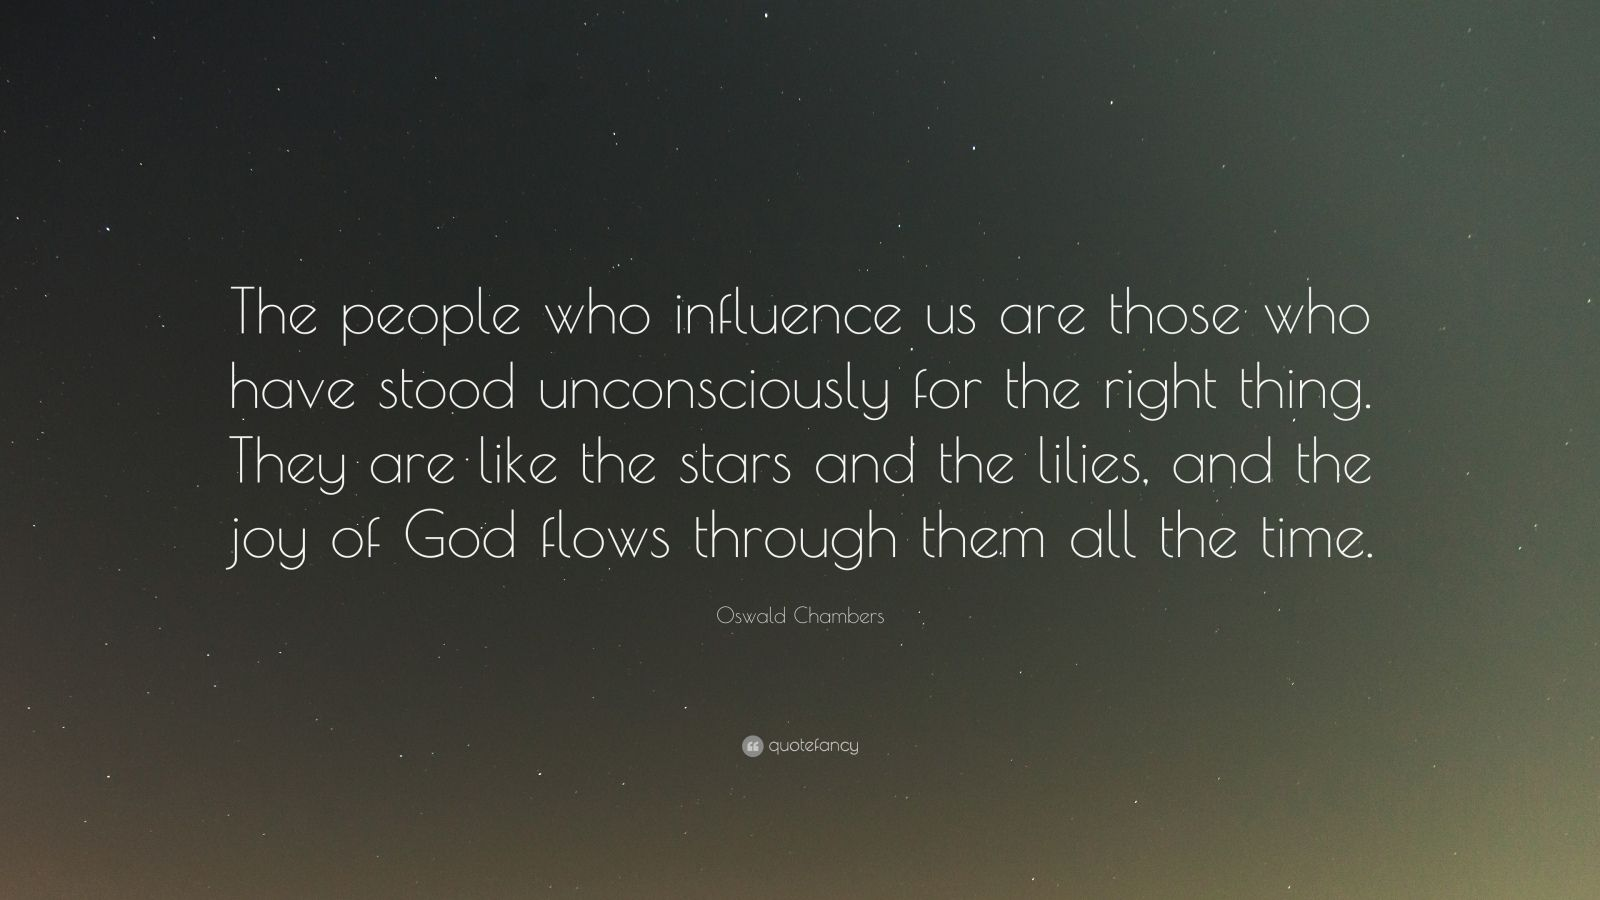 """Oswald Chambers Quote: """"The people who influence us are those who have stood unconsciously for the right thing. They are like the stars and the lilies, and the joy of God flows through them all the time."""""""